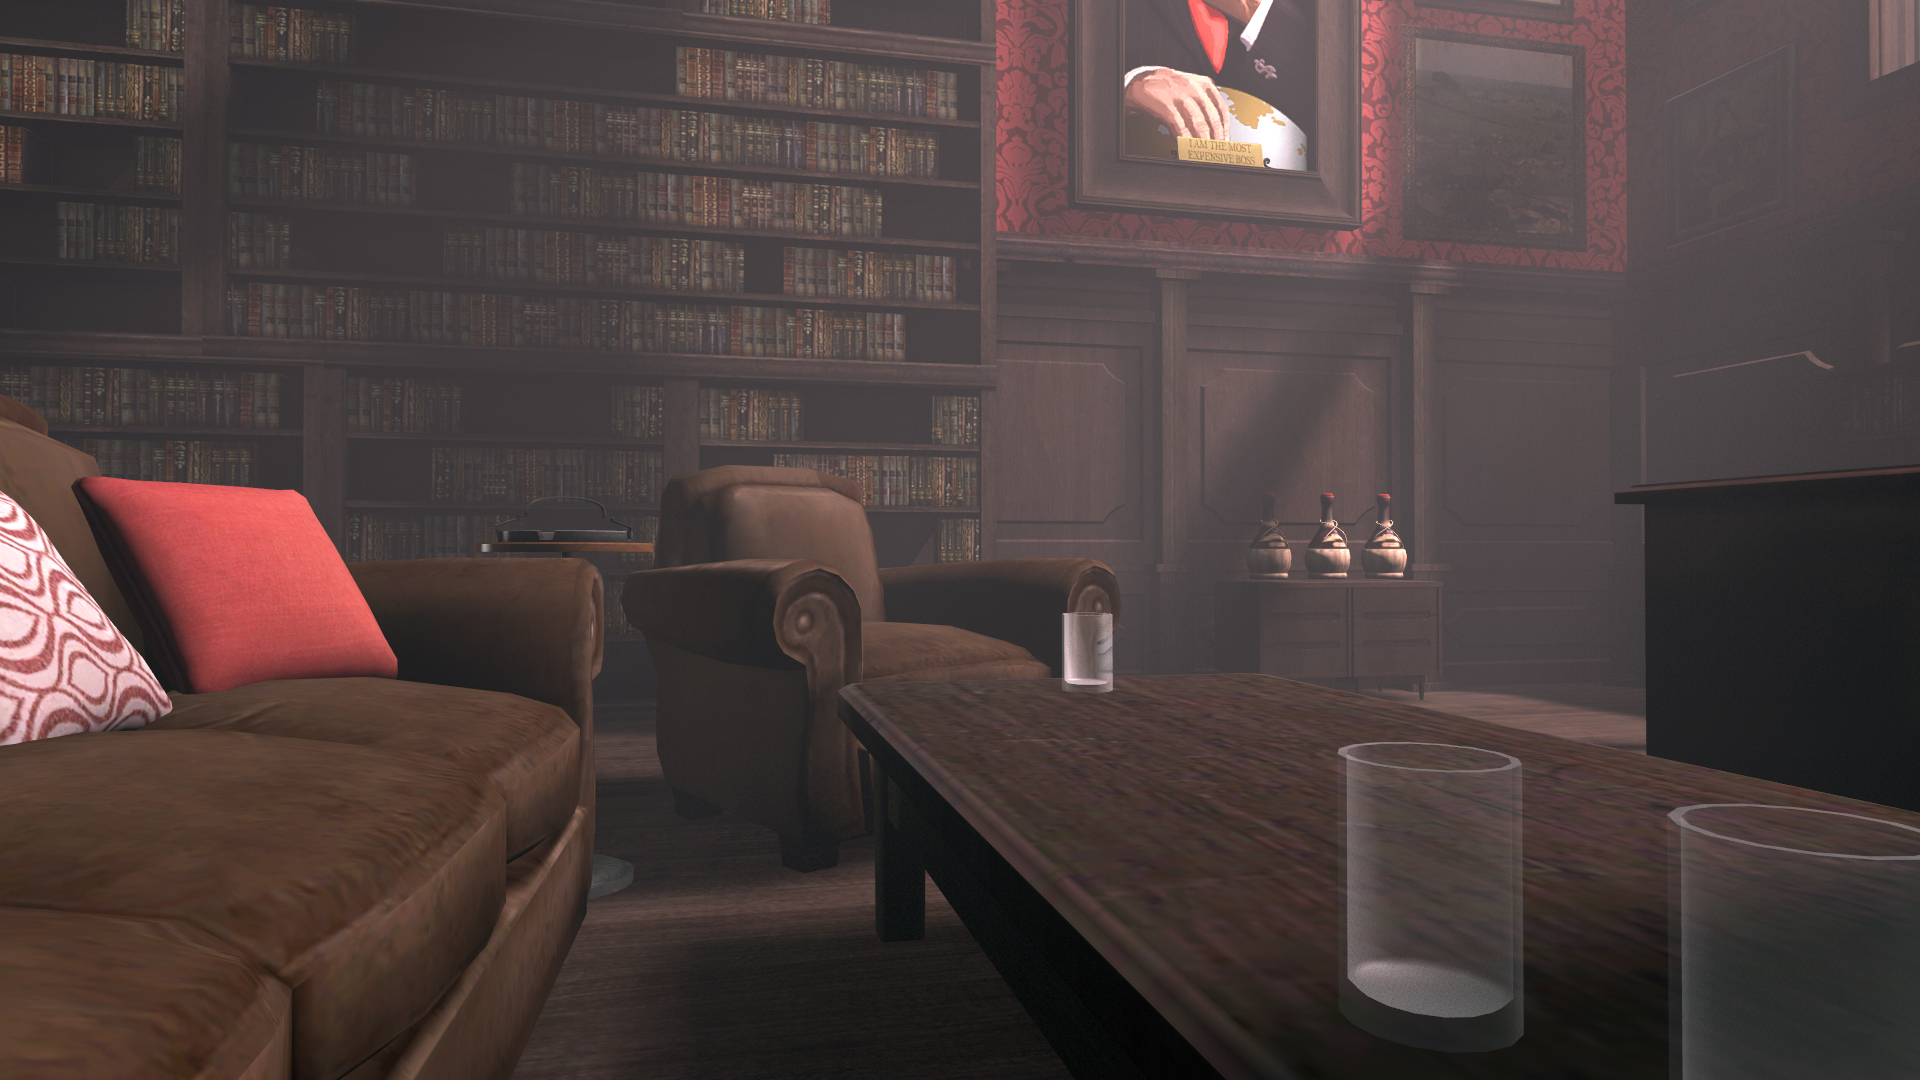 The Stanley Parable Download Free